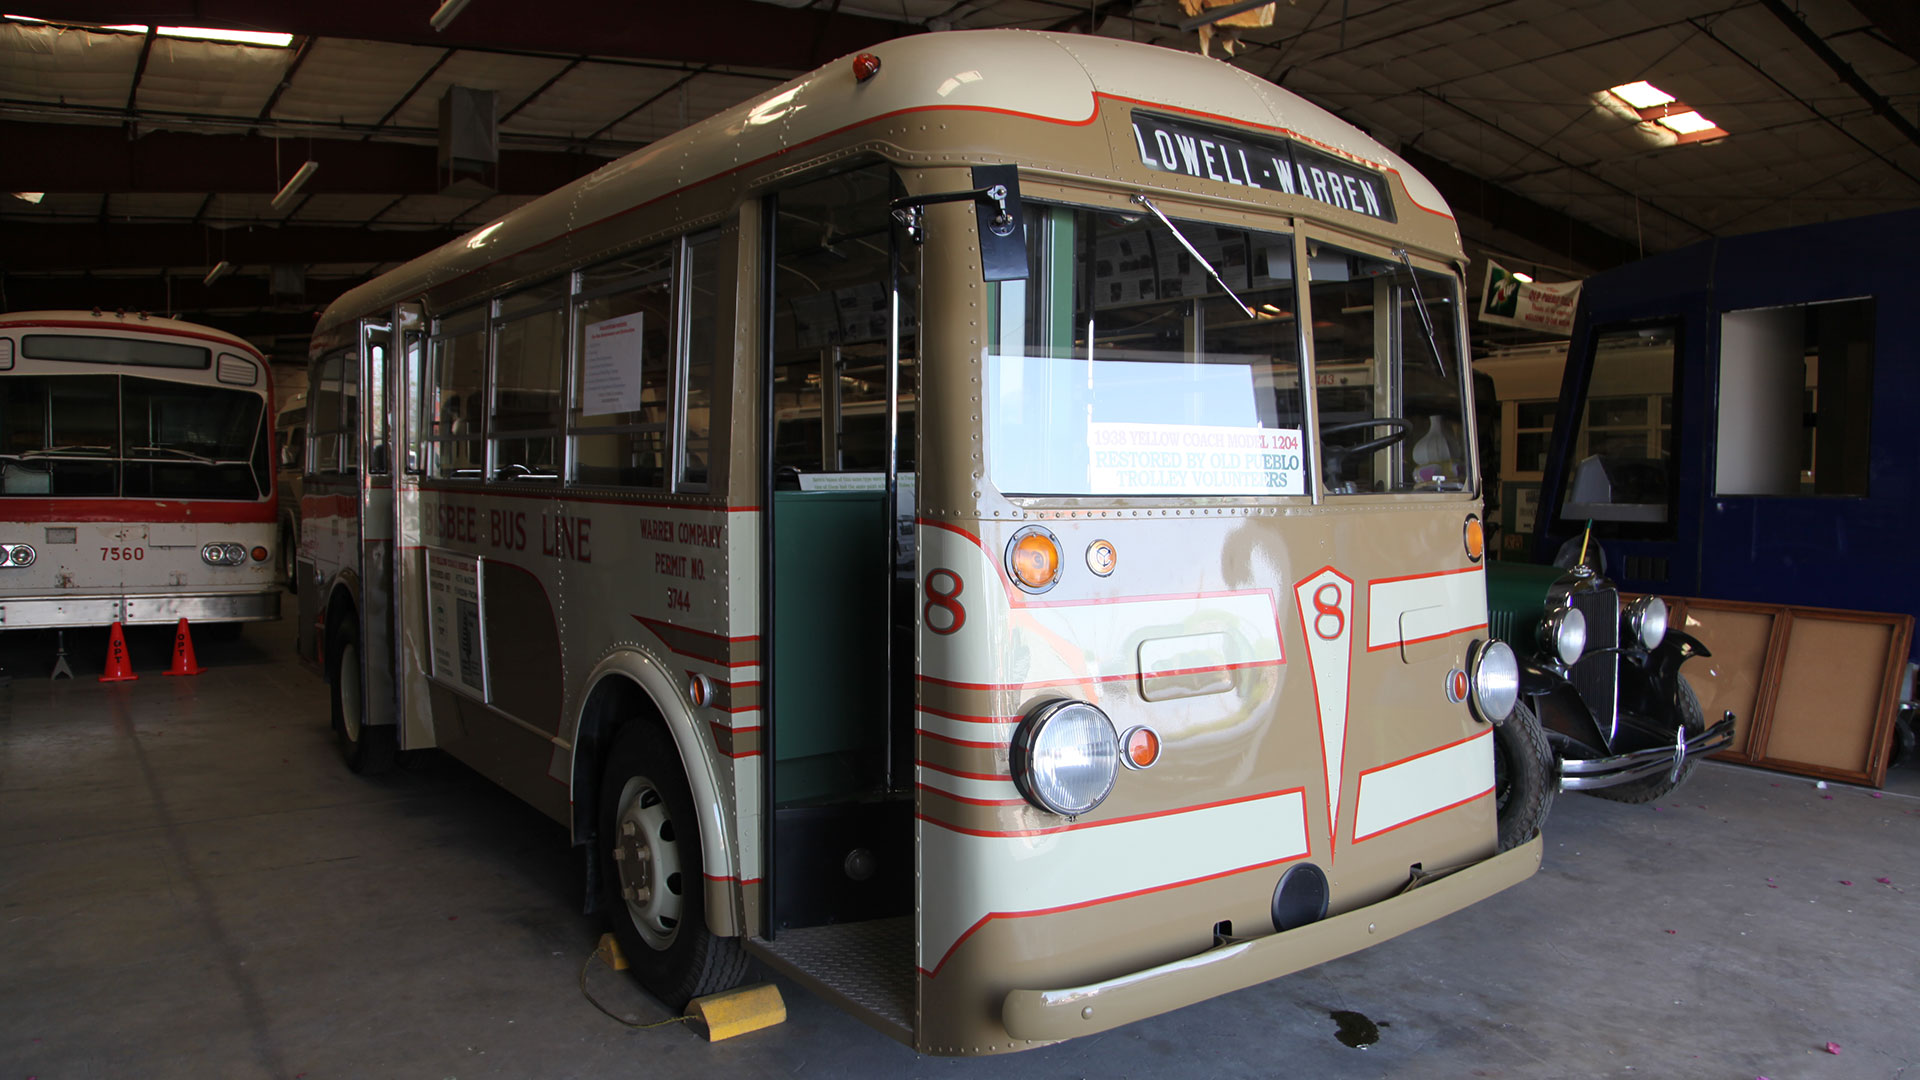 The 1938 bus was restored by a team of volunteers and others from Old Pueblo Trolley, Inc.